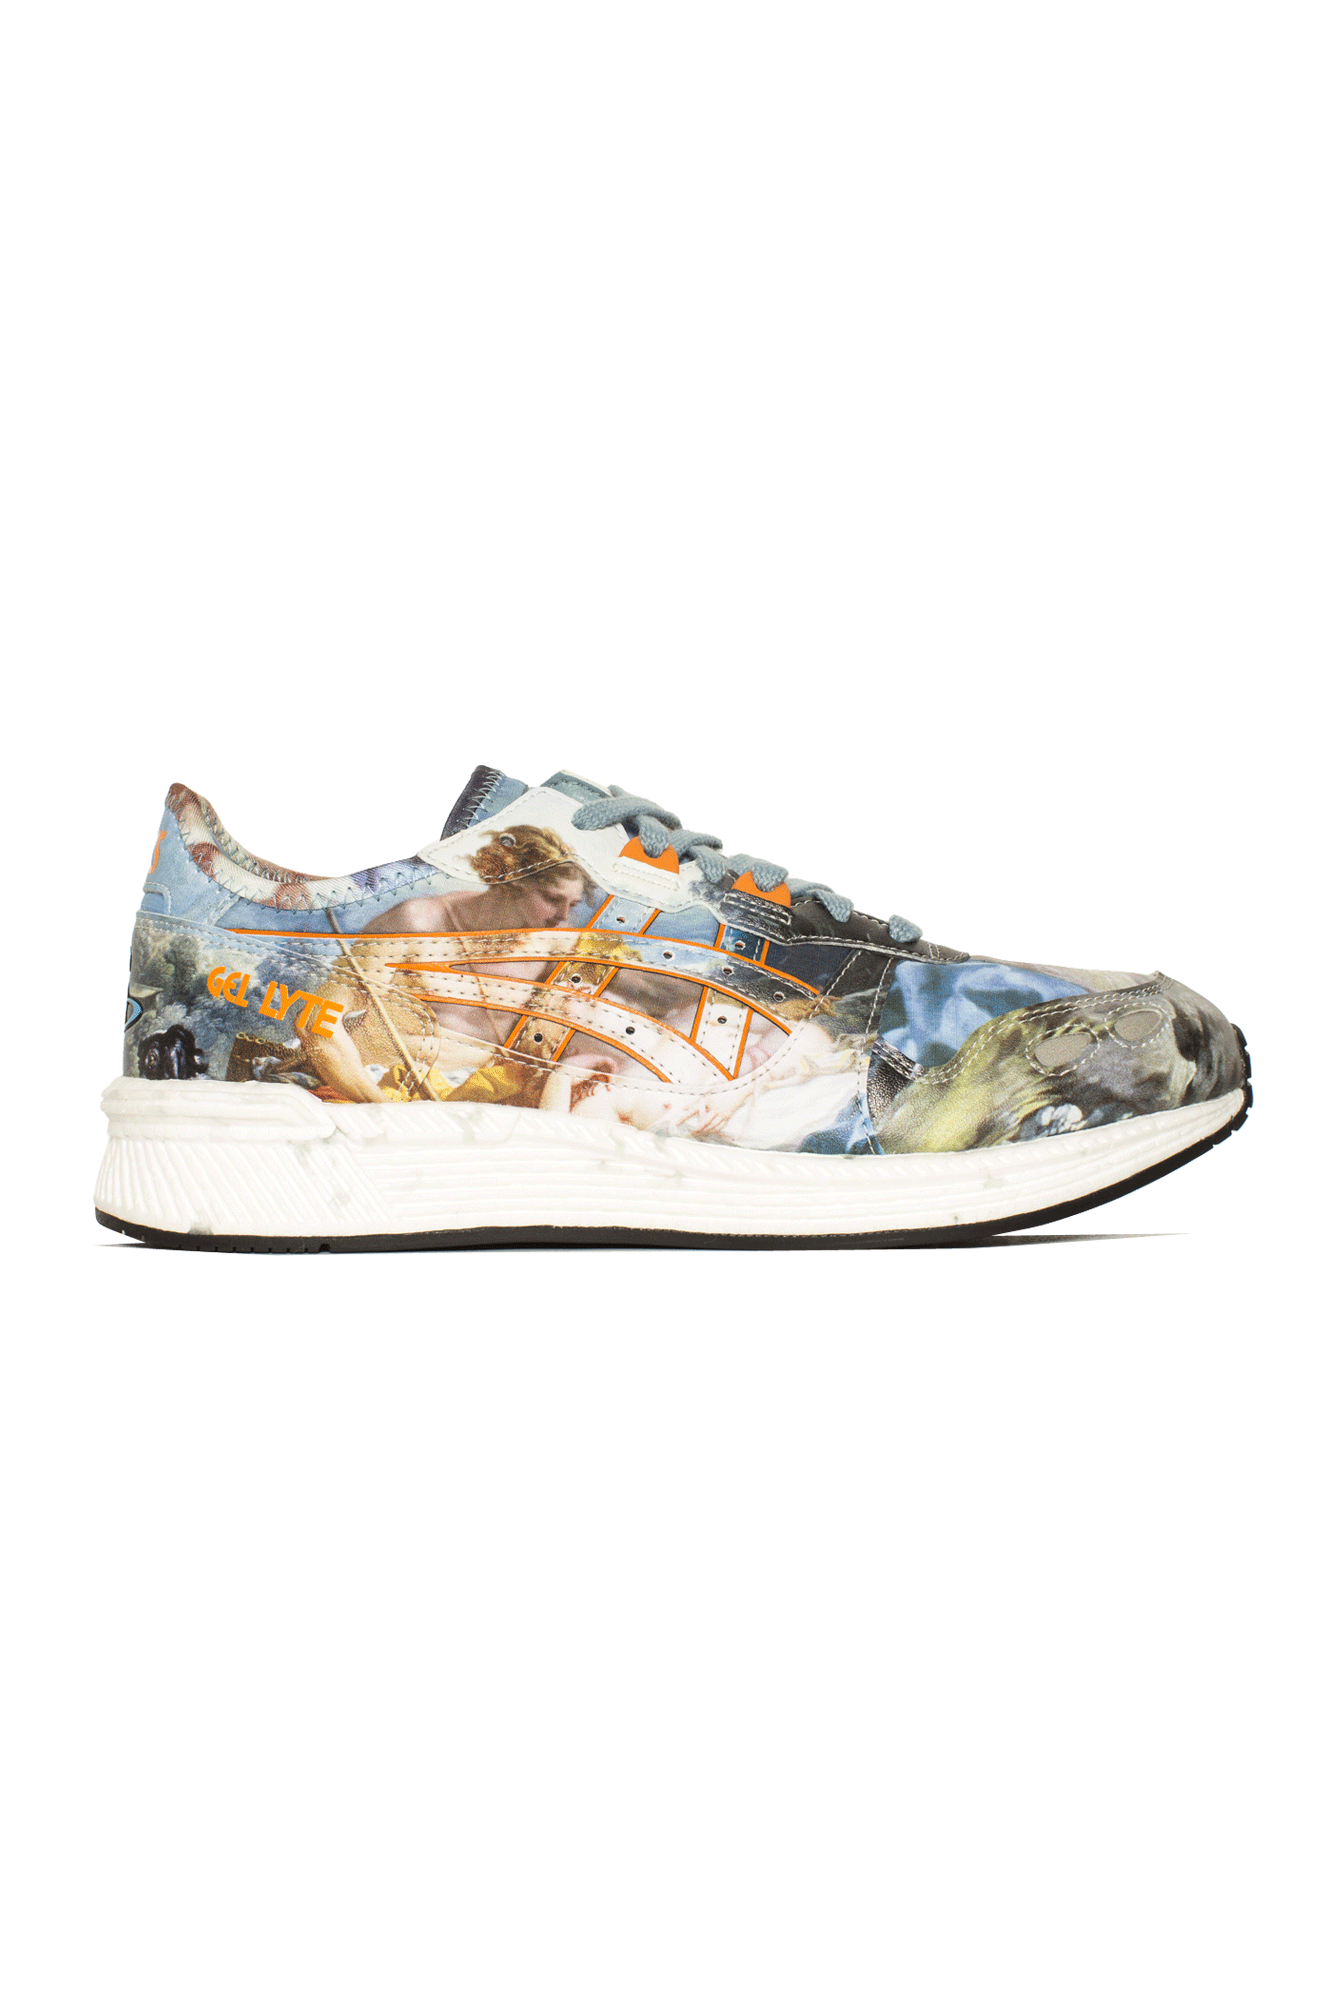 Asics Sneakers Hyper Gel-Lite x Vivienne Westwood Multicolore 1191A253-#000#410#8 - One Block Down